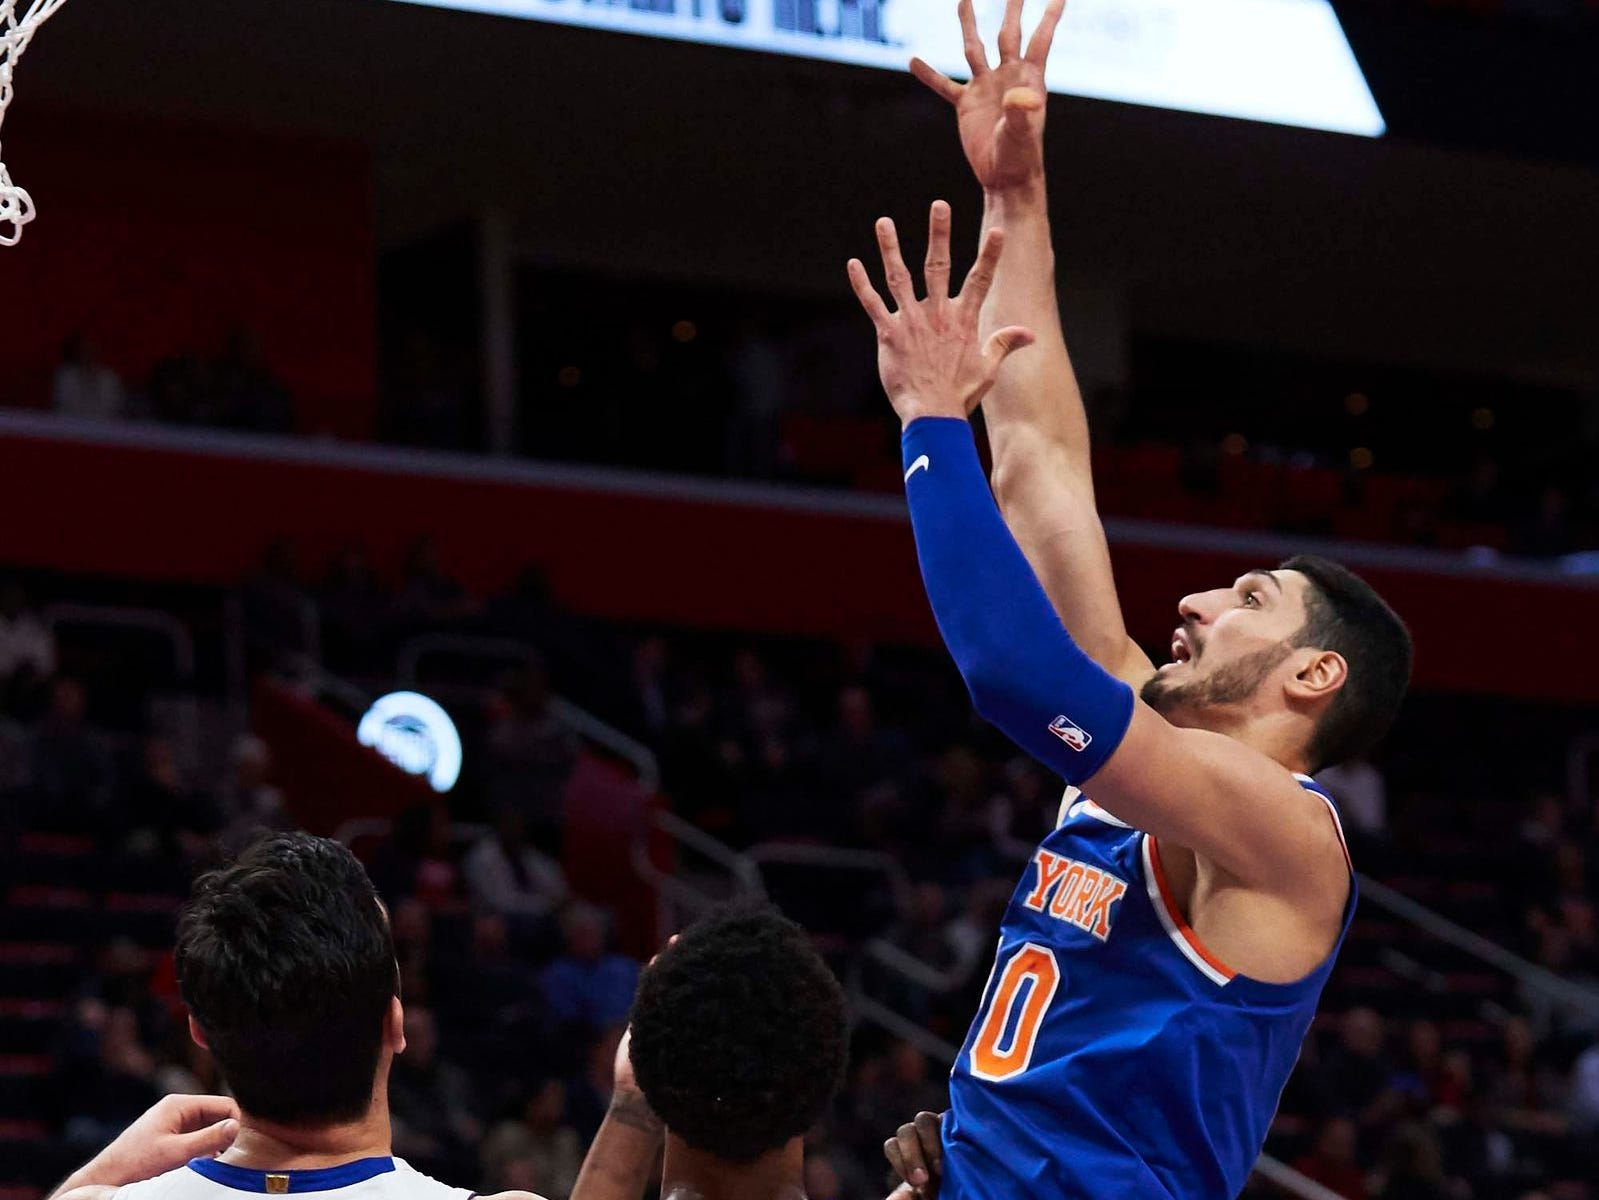 New York Knicks center Enes Kanter (00) shoots on Detroit Pistons center Zaza Pachulia (27) and guard Ish Smith (14) in the second half at Little Caesars Arena.